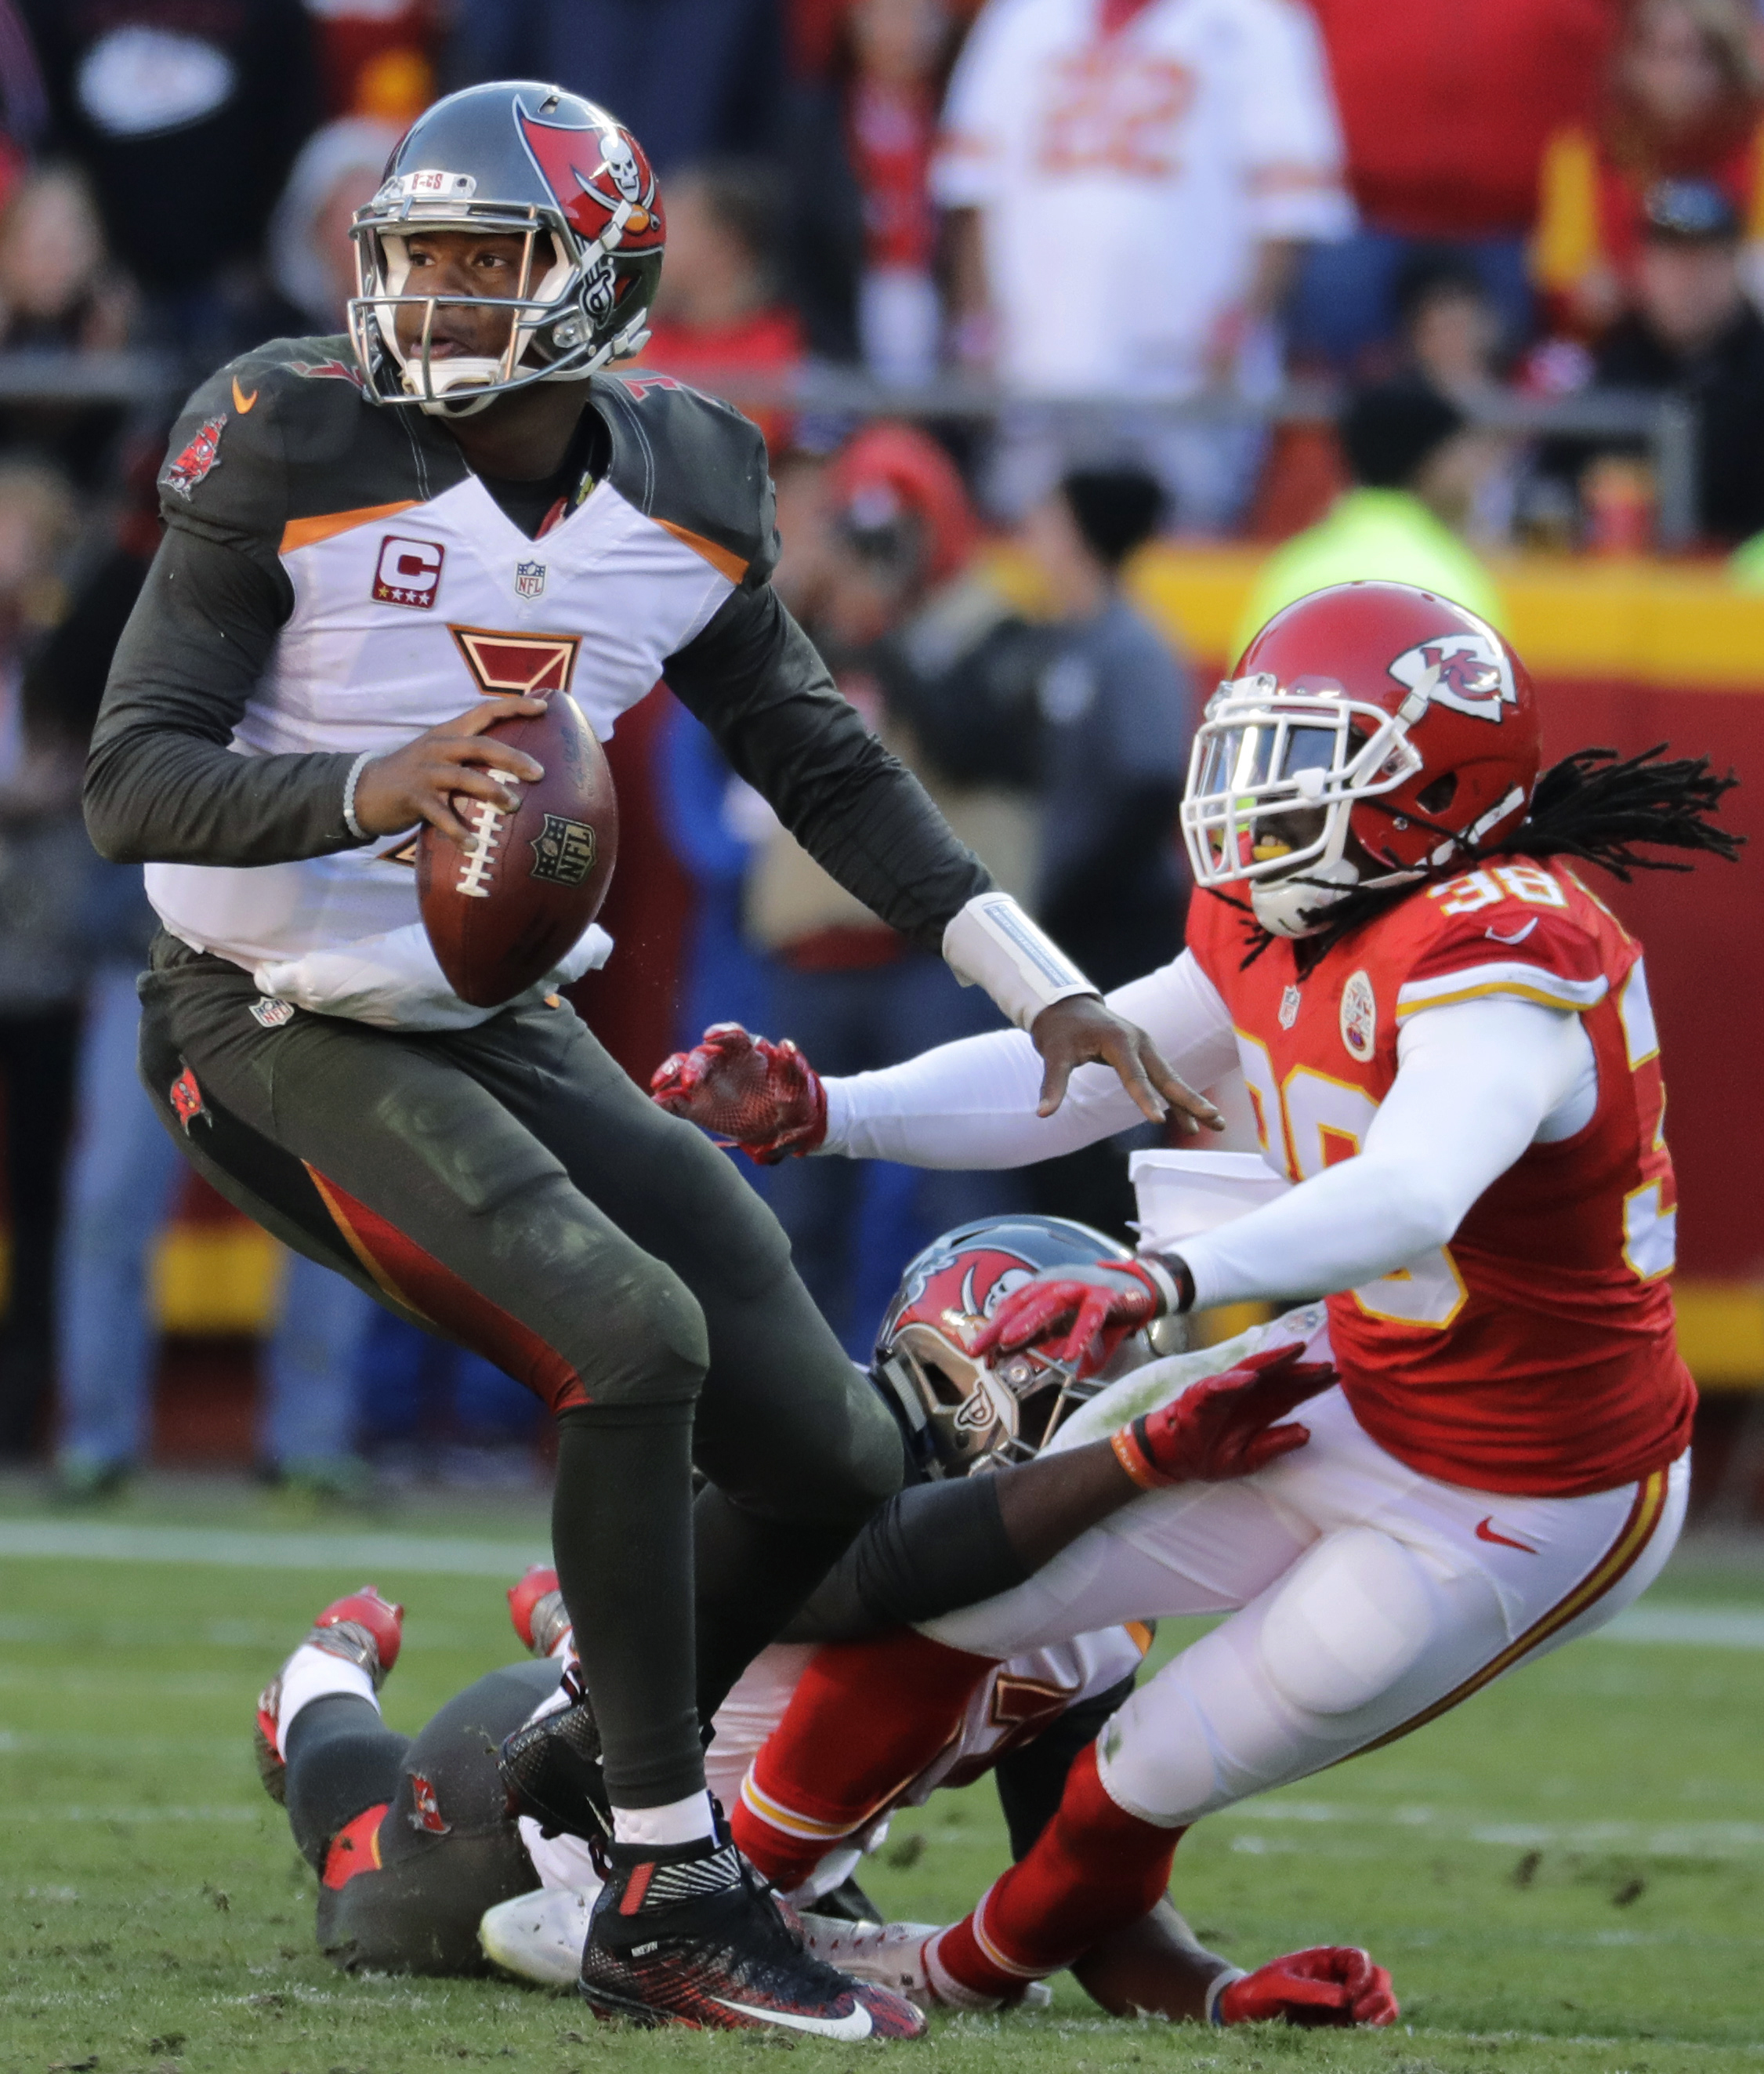 Tampa Bay Buccaneers quarterback Jameis Winston (3) looks for a receiver as Kansas City Chiefs defensive back Ron Parker (38) is tackled by running back Peyton Barber (43) during the second half of an NFL football game in Kansas City, Mo., Sunday, Nov. 20